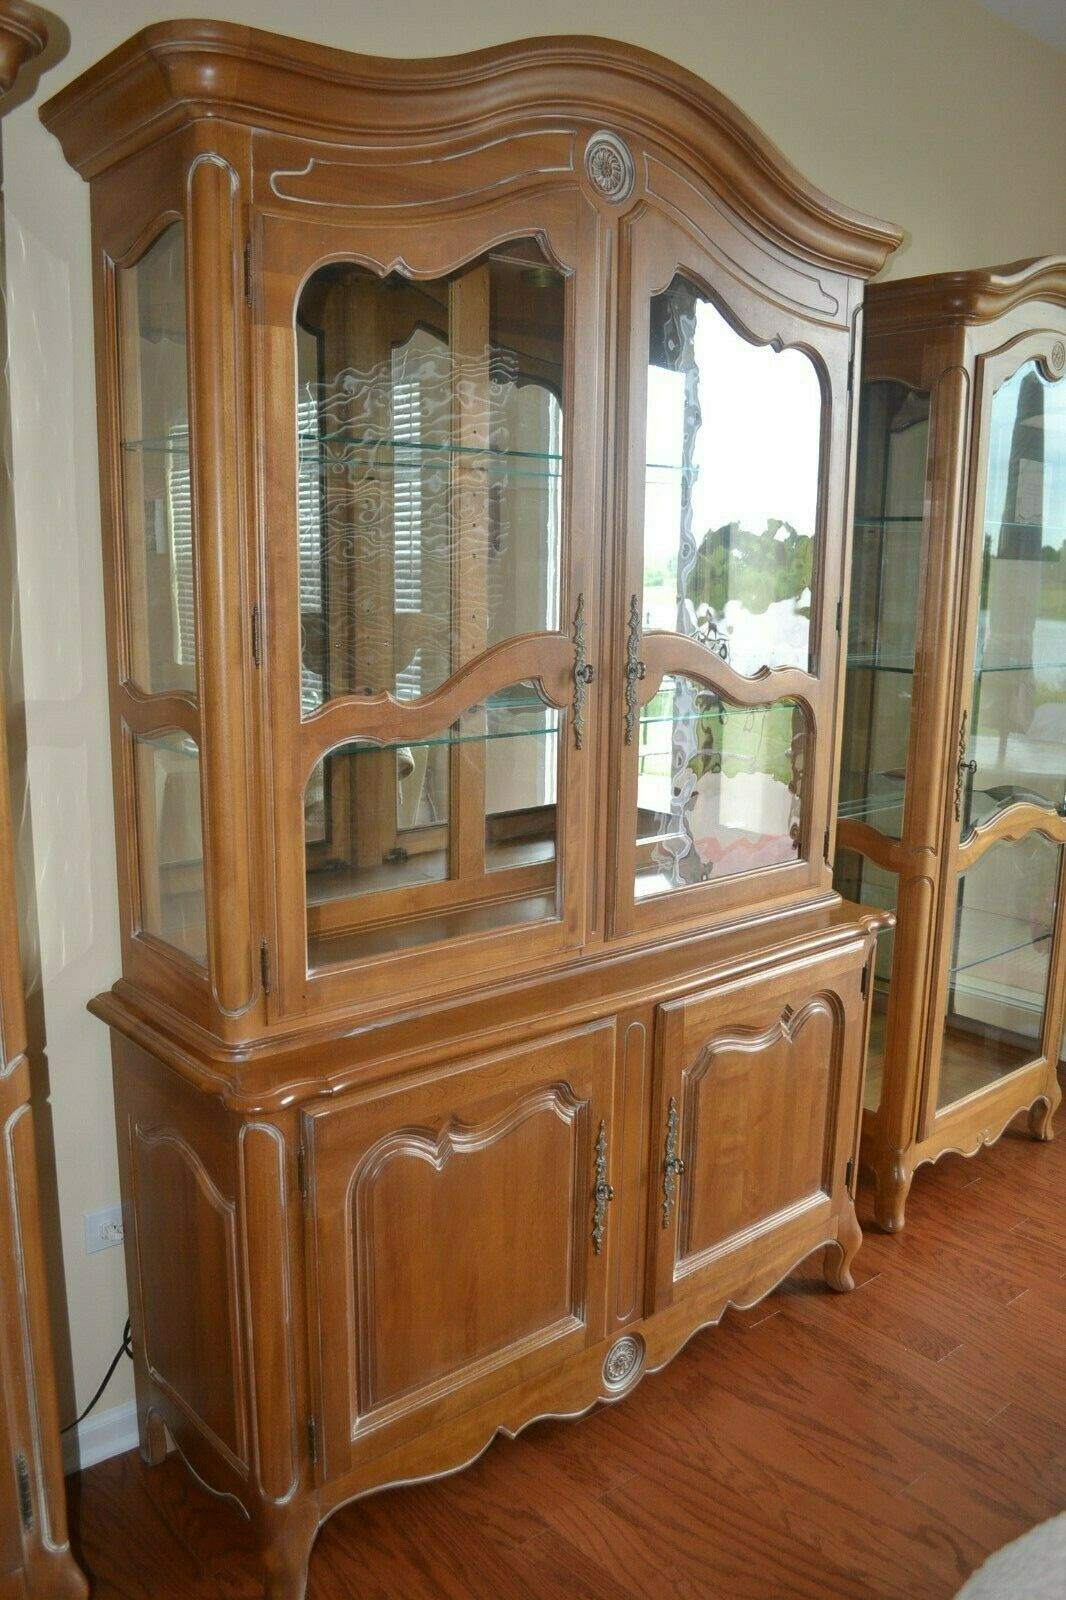 Ethan Allen Country French China Cabinet Usa Solid Wood Lighted 26 6217 26 6219 For Sale Online Ebay